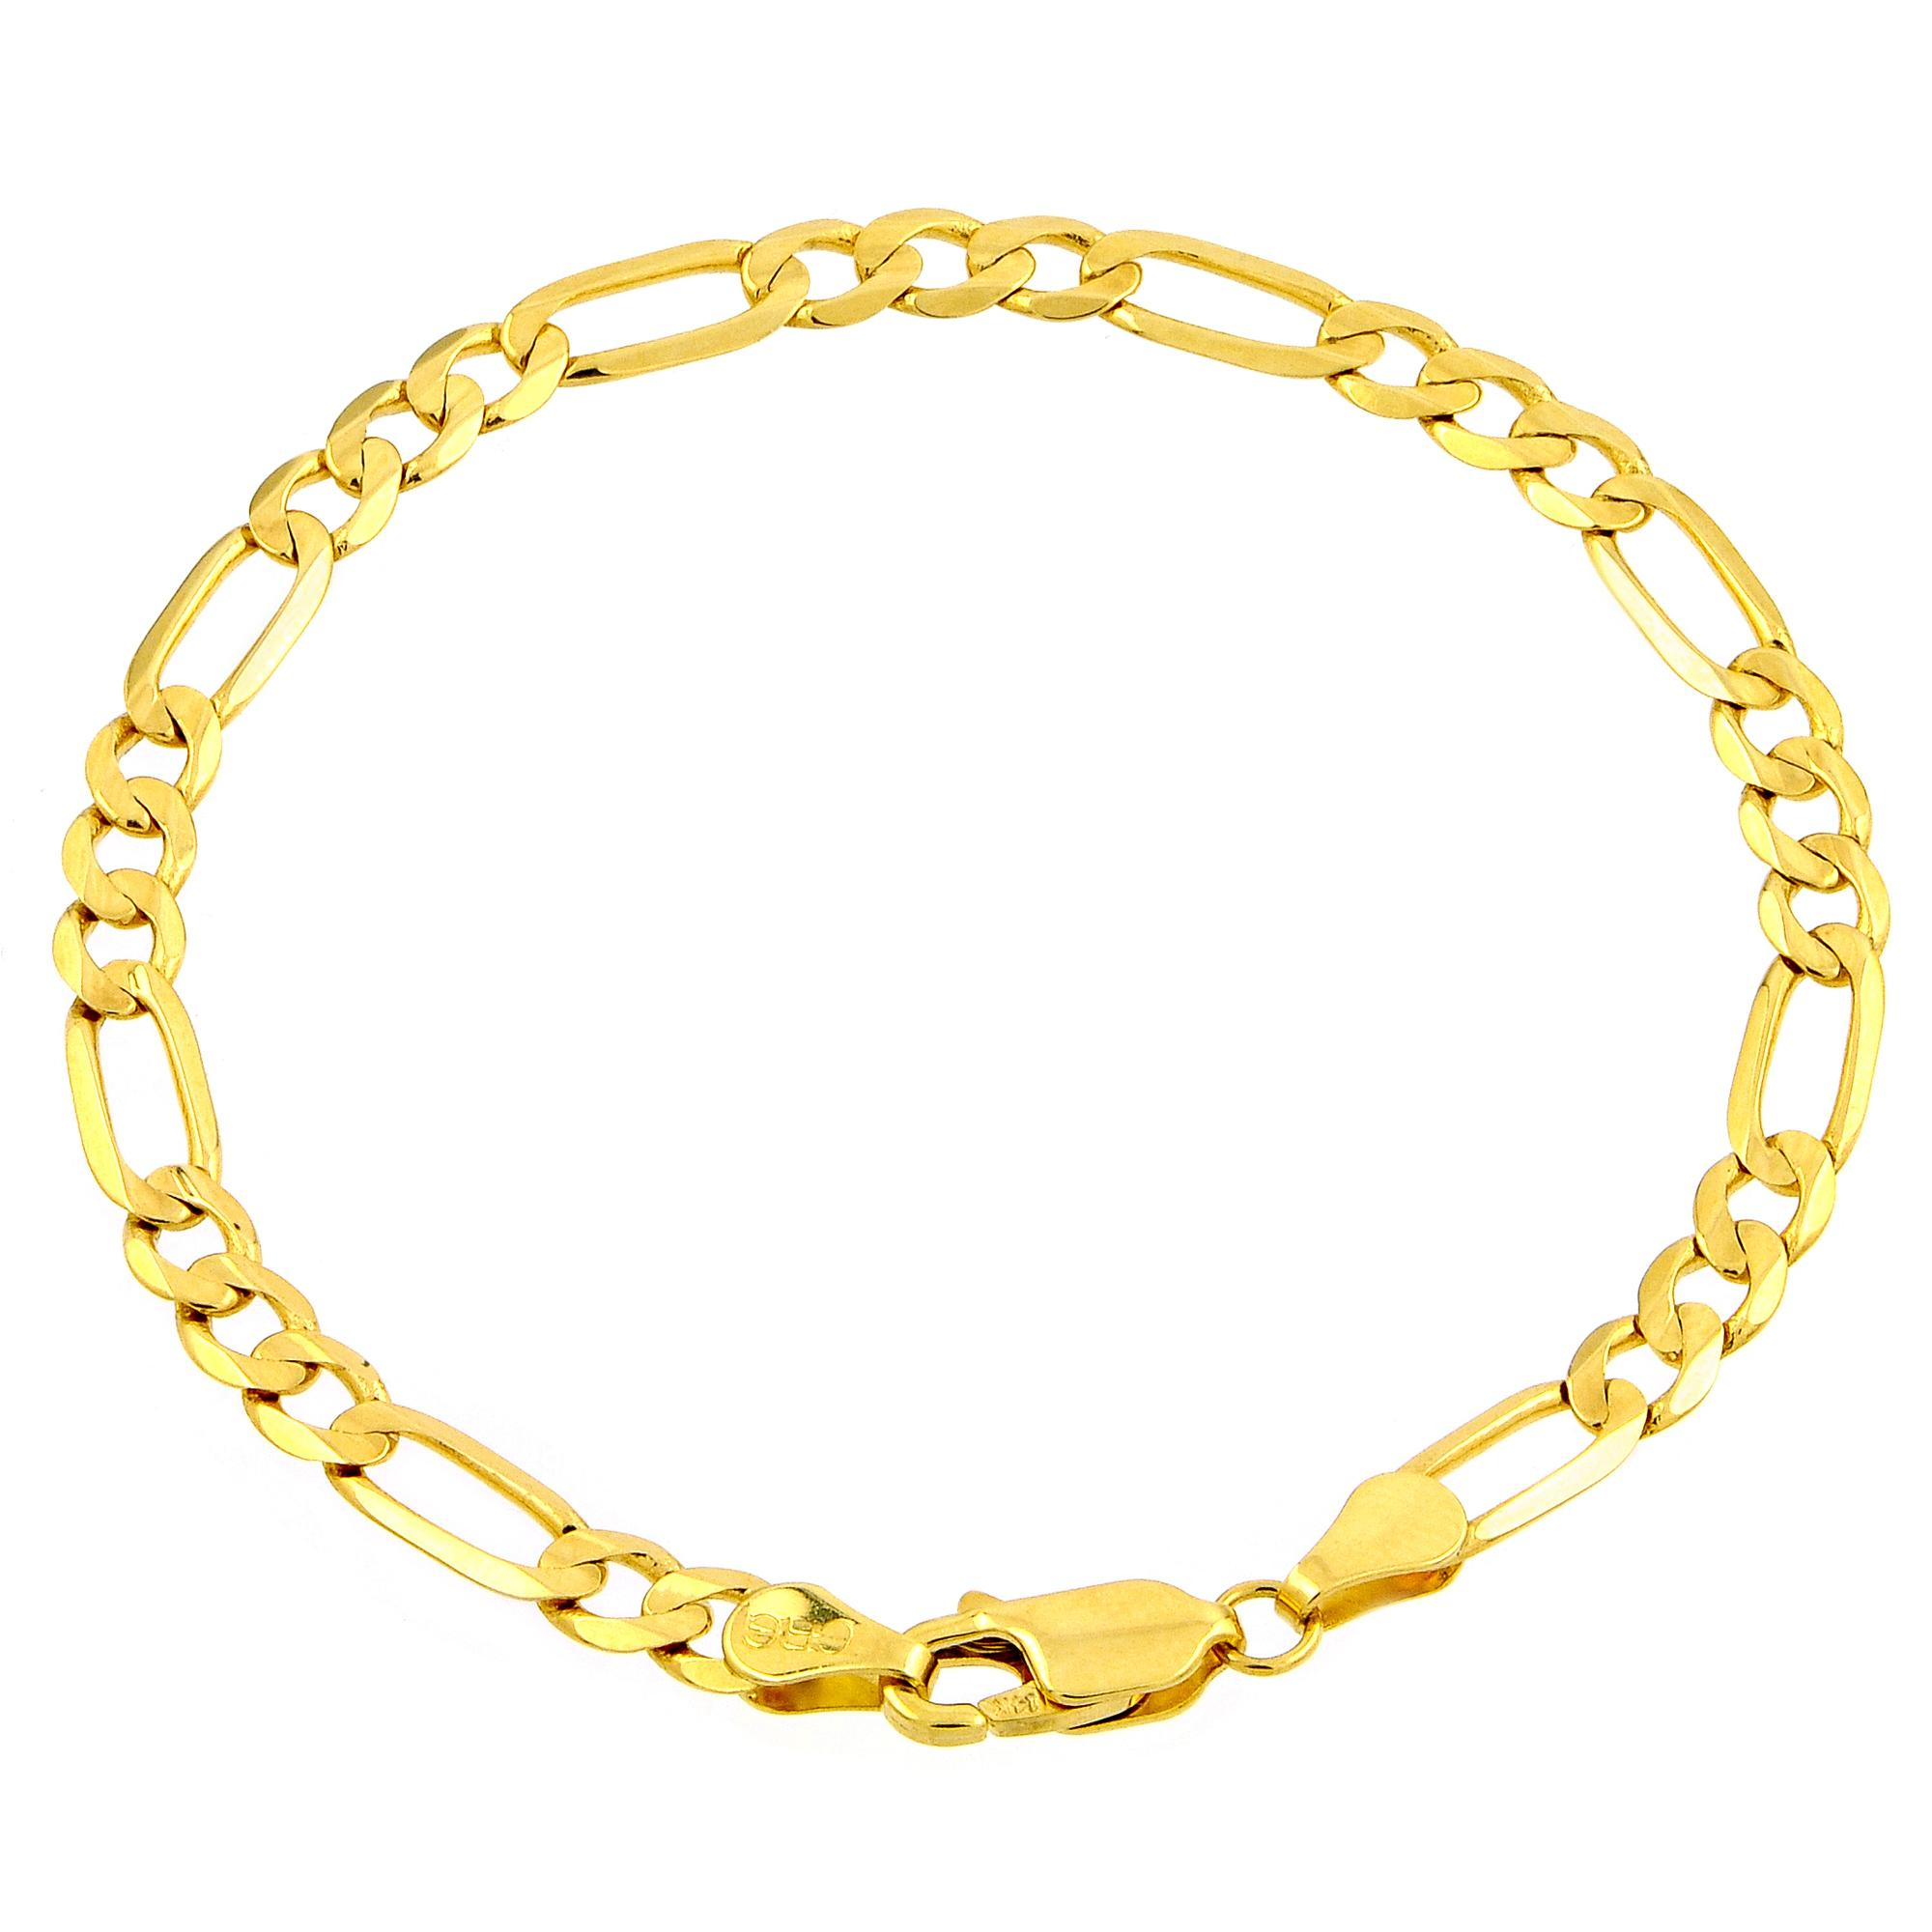 "Amazon.com: 10k Yellow Gold Figaro Bracelet, 8"": Link"